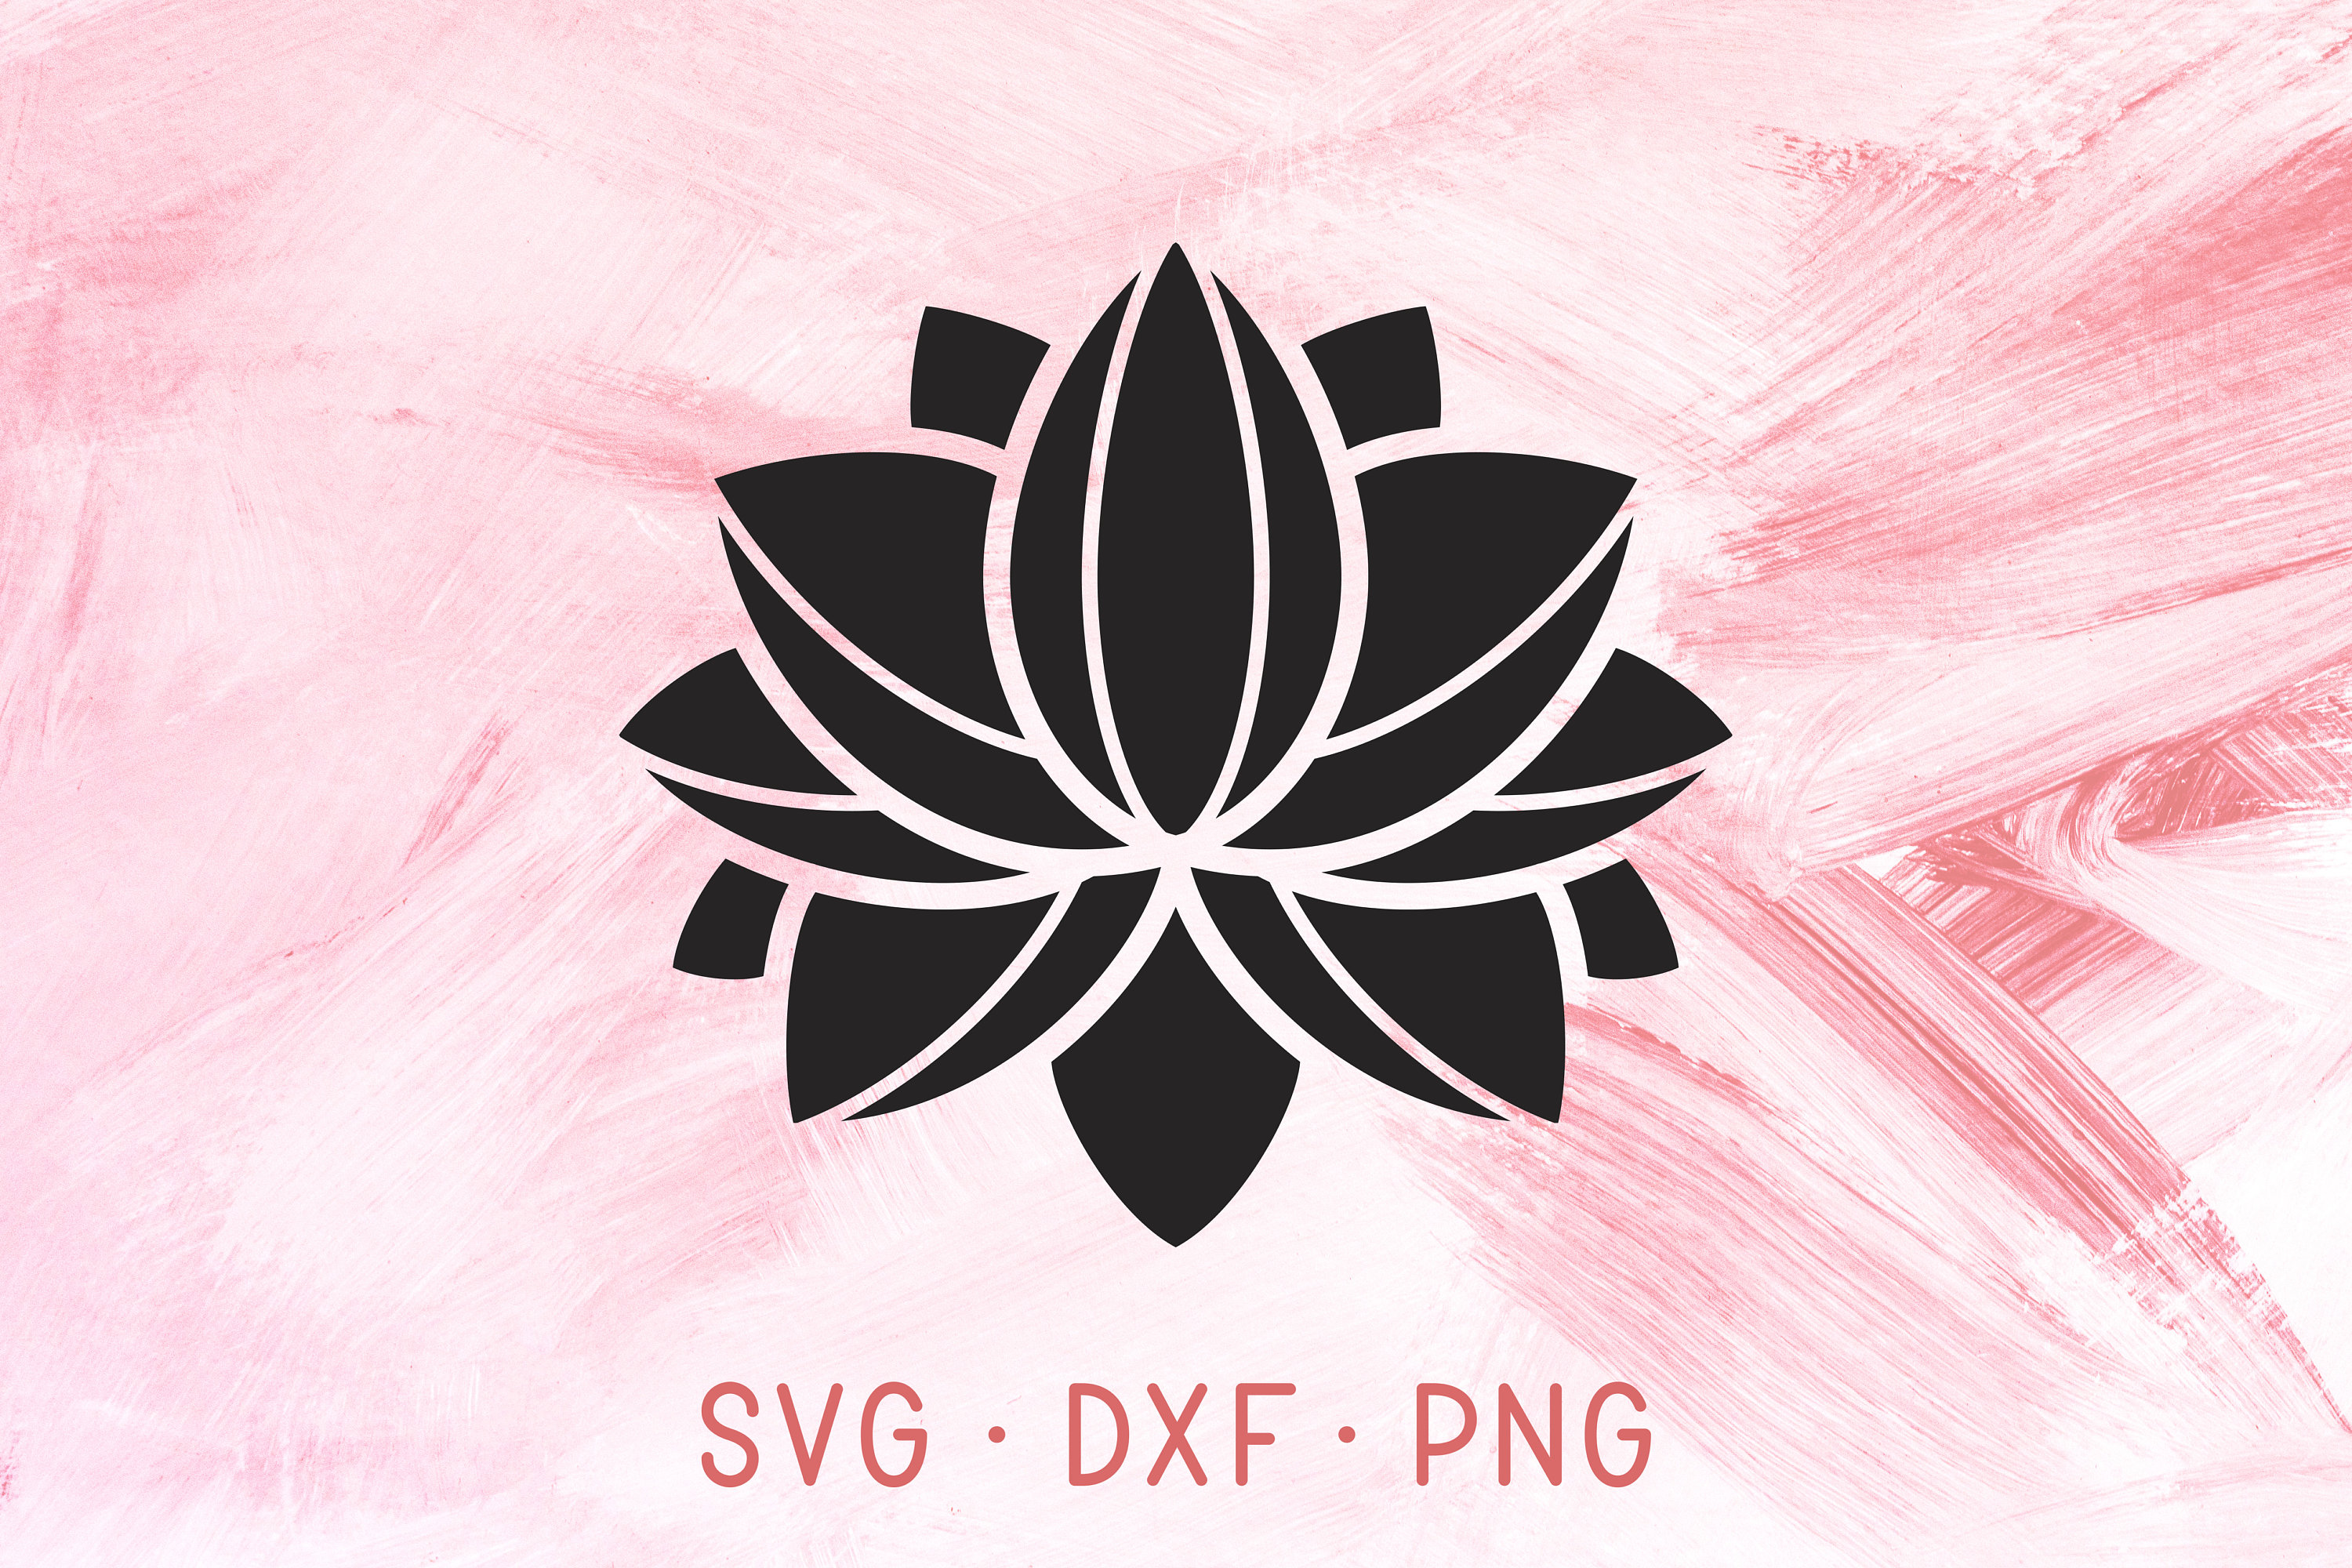 Lotus Flower Svg Dxf Png Cutting Files Mandala Floral Blossom